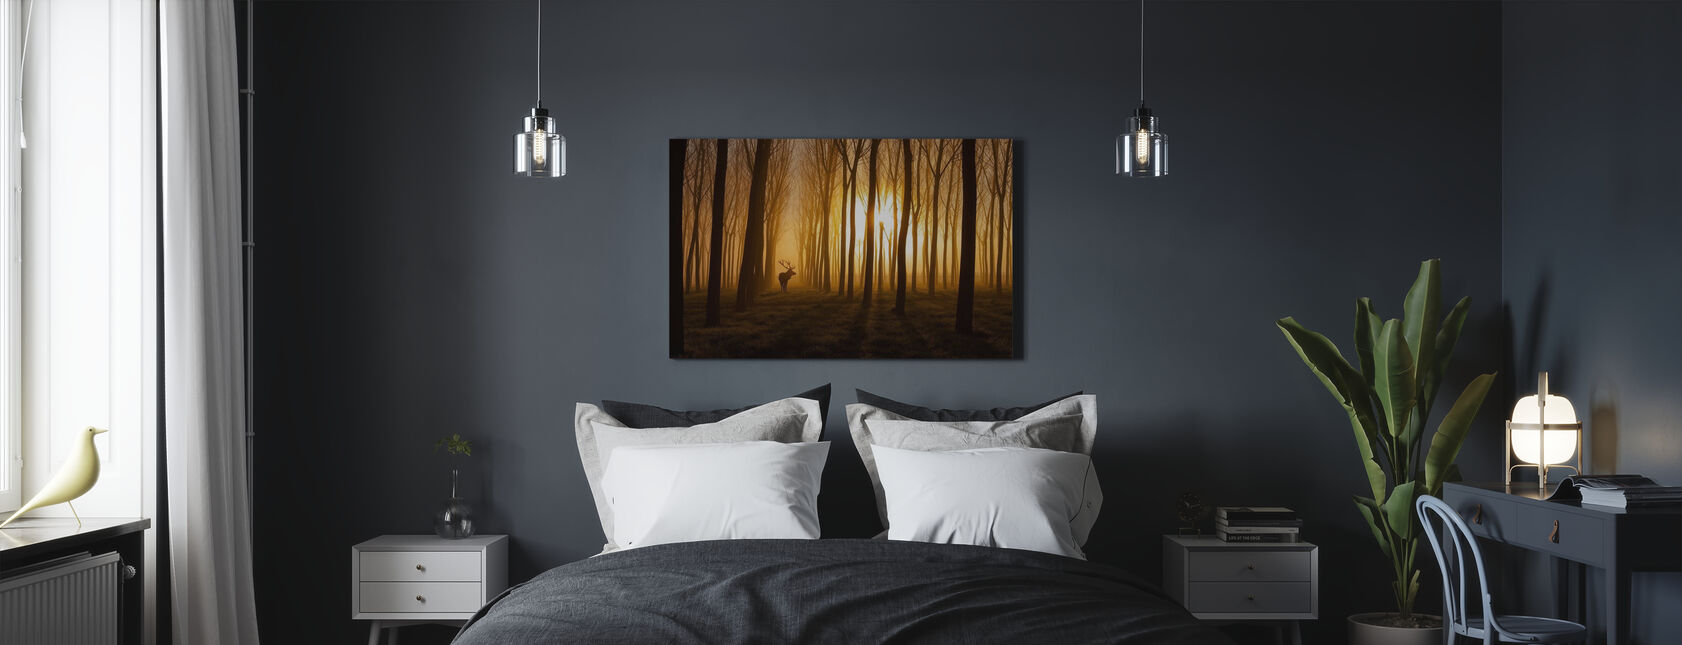 Once upon a time - Canvas print - Slaapkamer